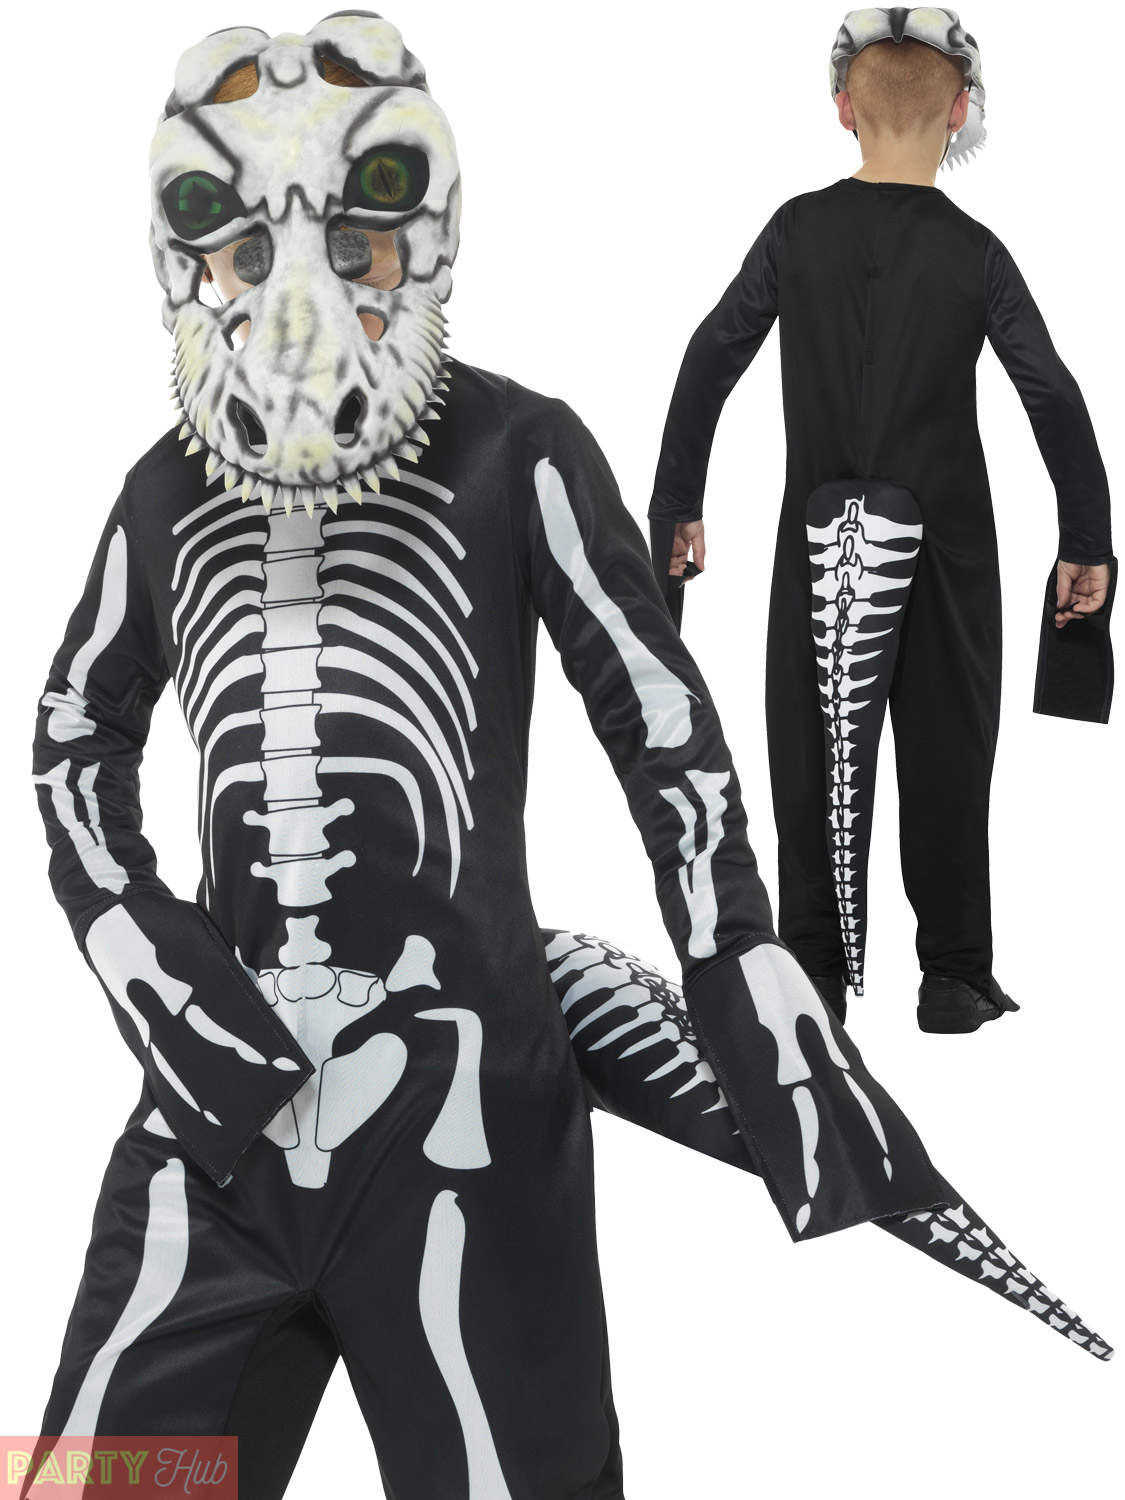 Skeleton Outfit Halloween.Details About Boys T Rex Skeleton Costume Childs Dinosaur Scary Halloween Fancy Dress Outfit